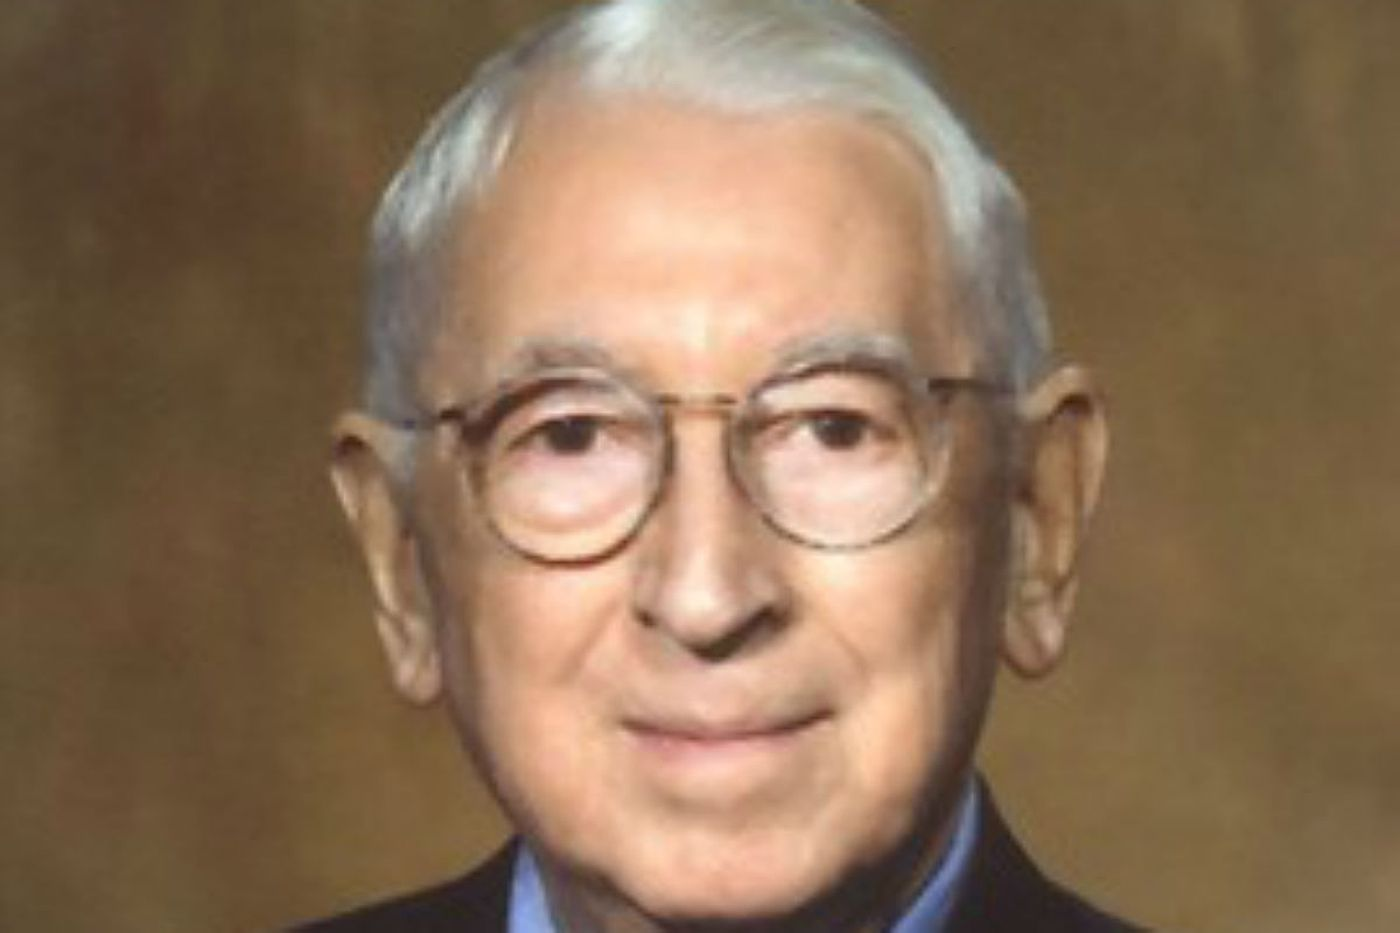 Dr. Luther W. Brady, 92, renowned radiation oncologist